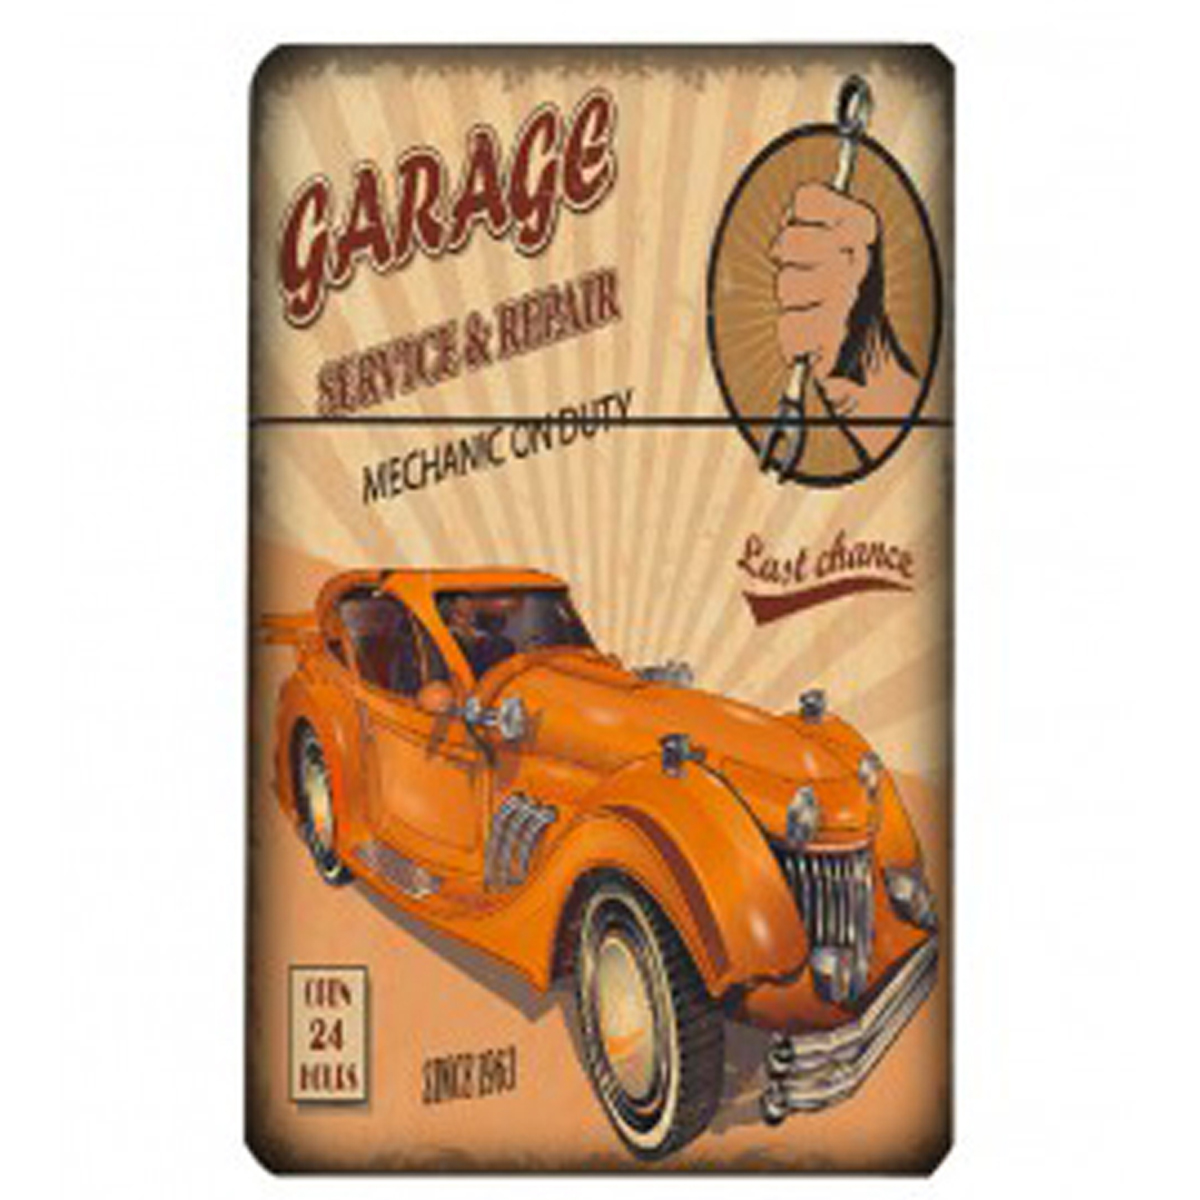 Etui à paquet de cigarettes \'Classic Cars\' orange beige (vintage) - 95x60x28 mm - [Q4992]